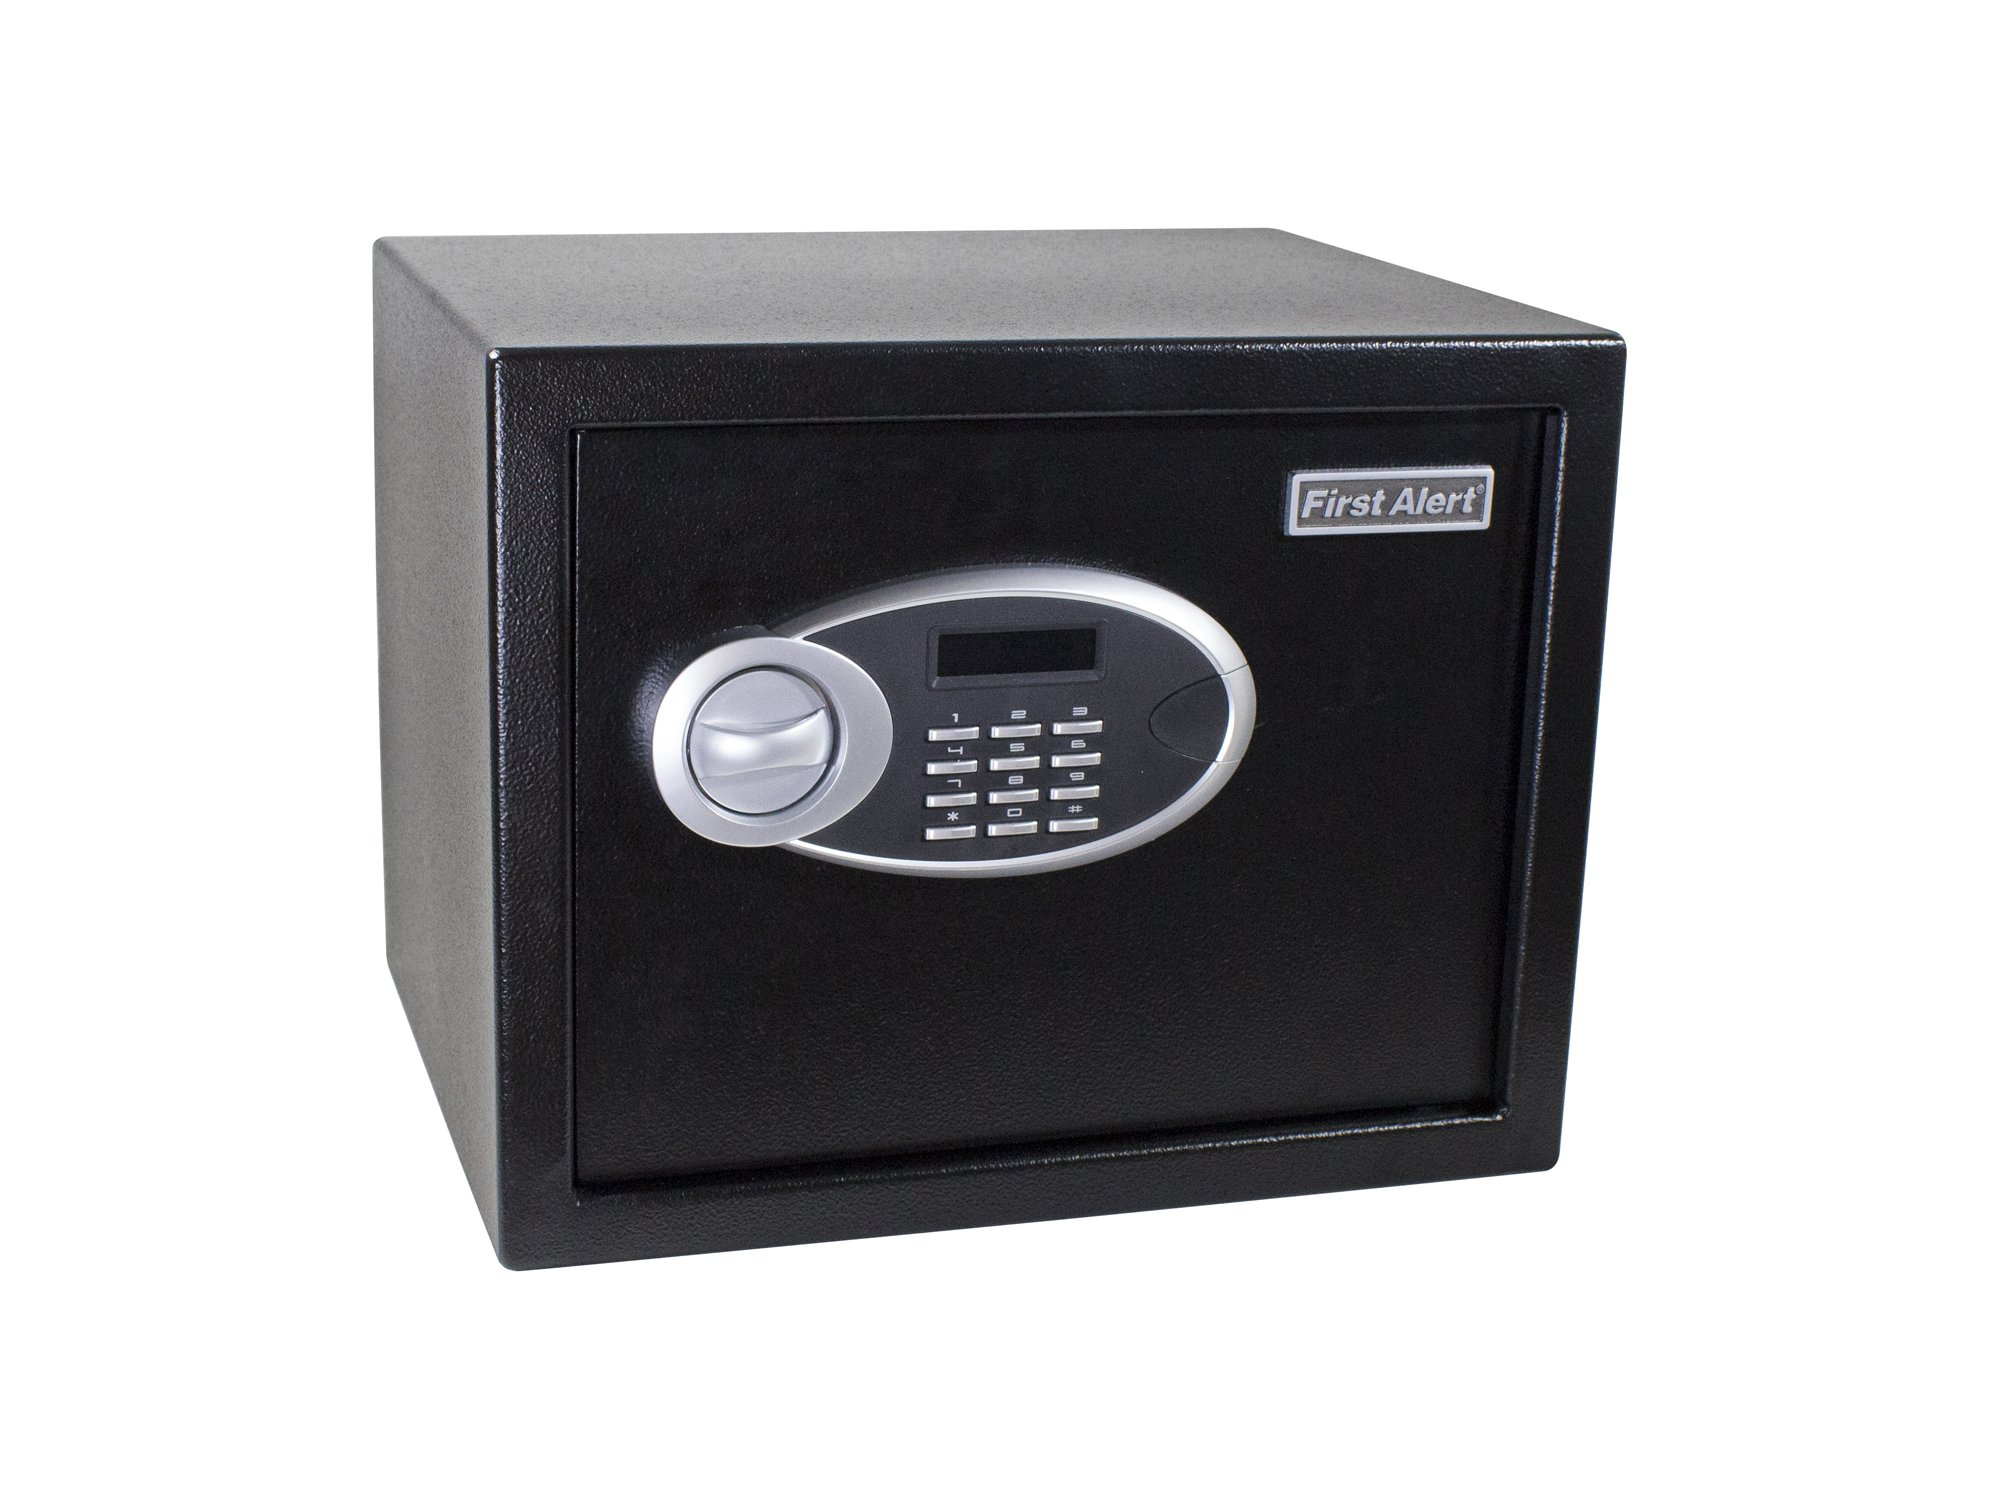 First Alert 4009DFB Anti-Theft Safe with Digital Lock.94 Cubic-Foot, Black